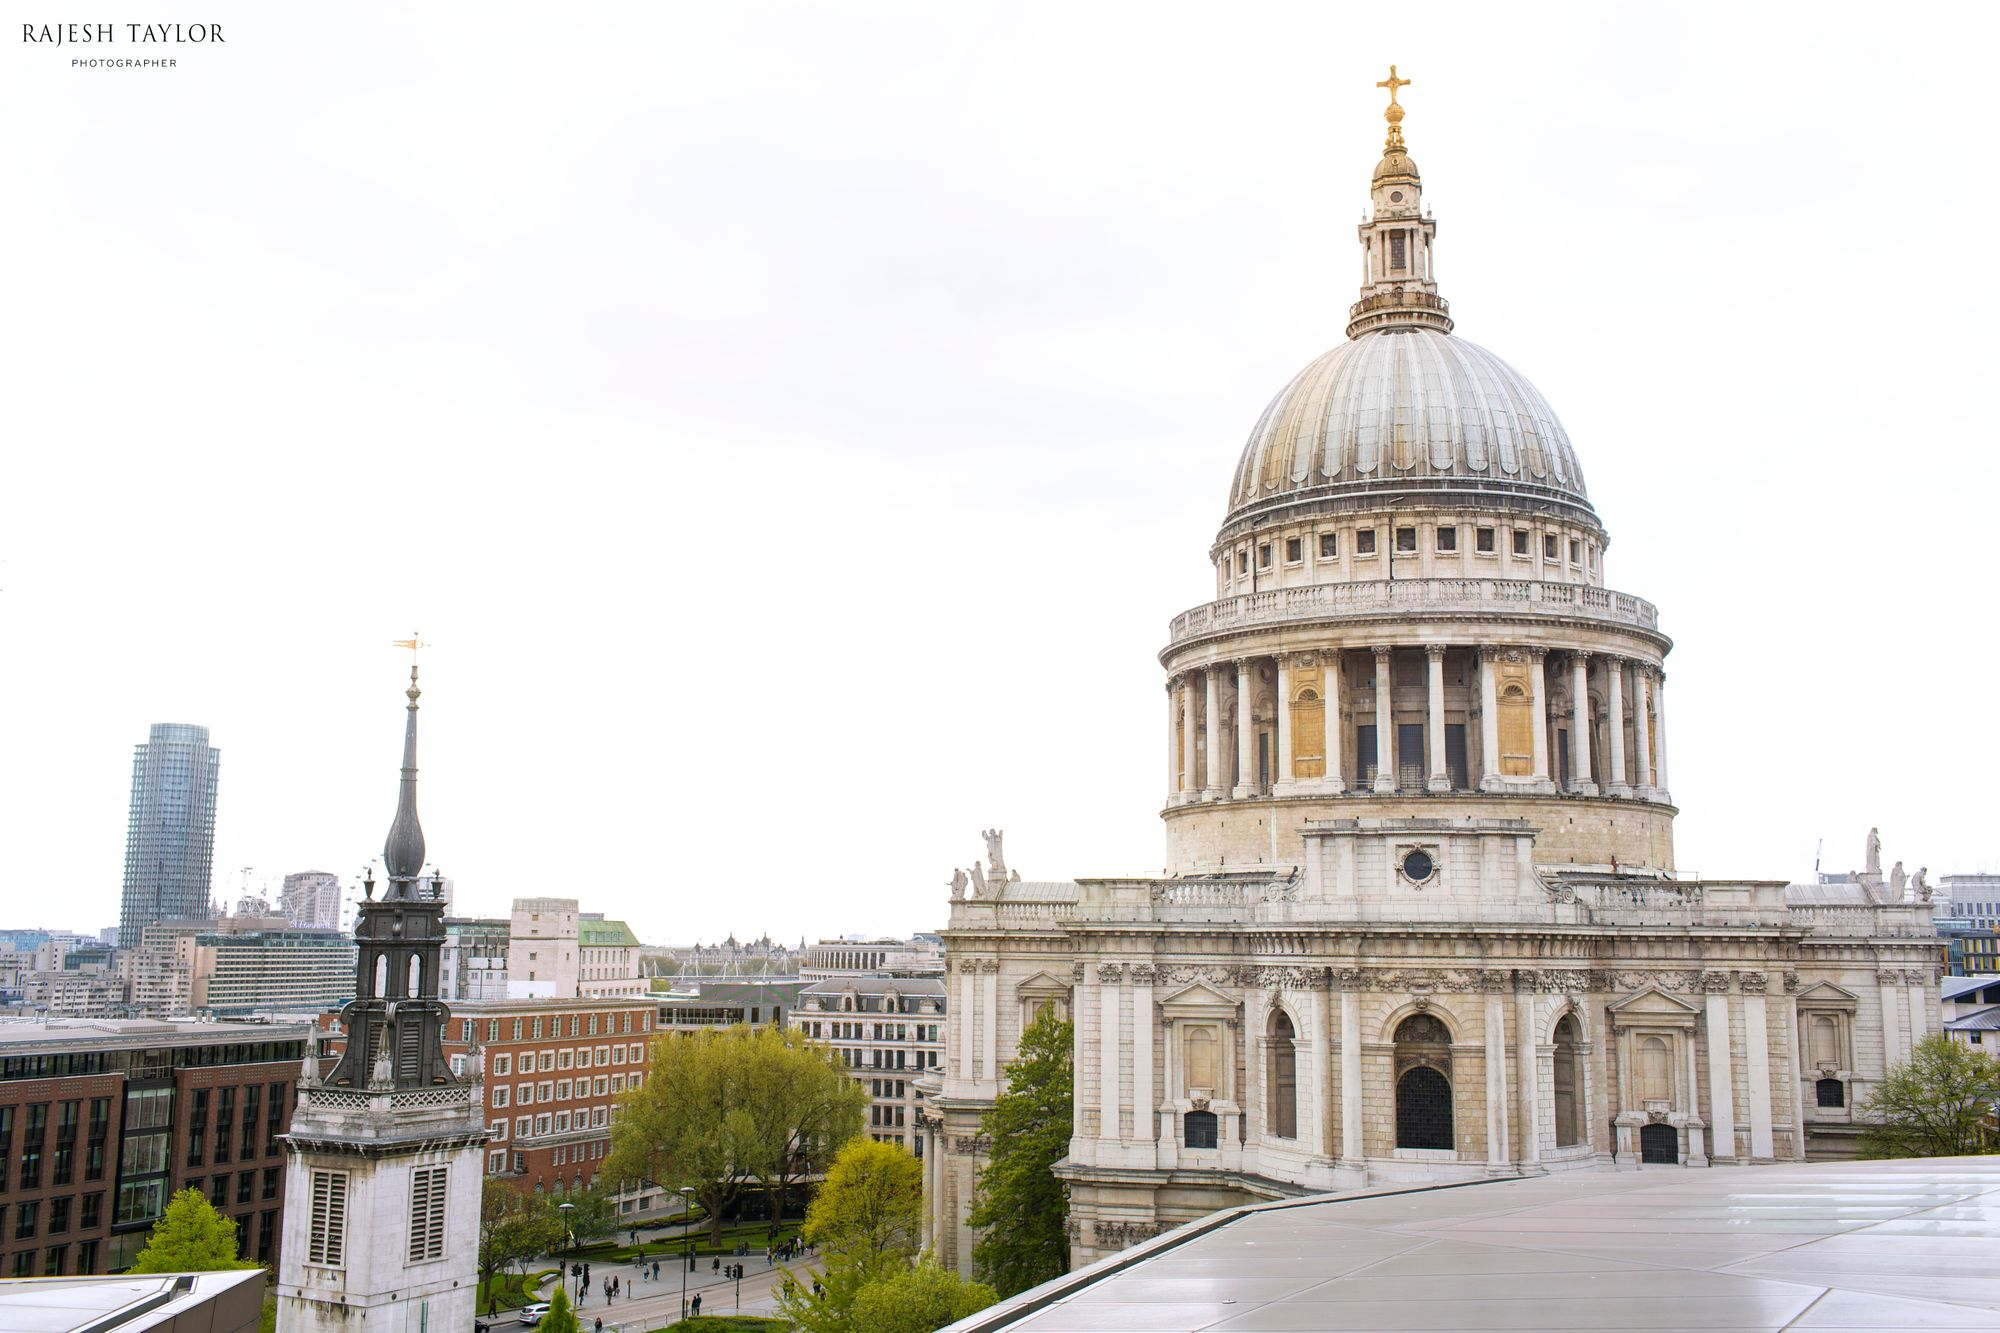 Rooftop views of St Paul's Cathedral towards Ludgate Hill © Rajesh Taylor